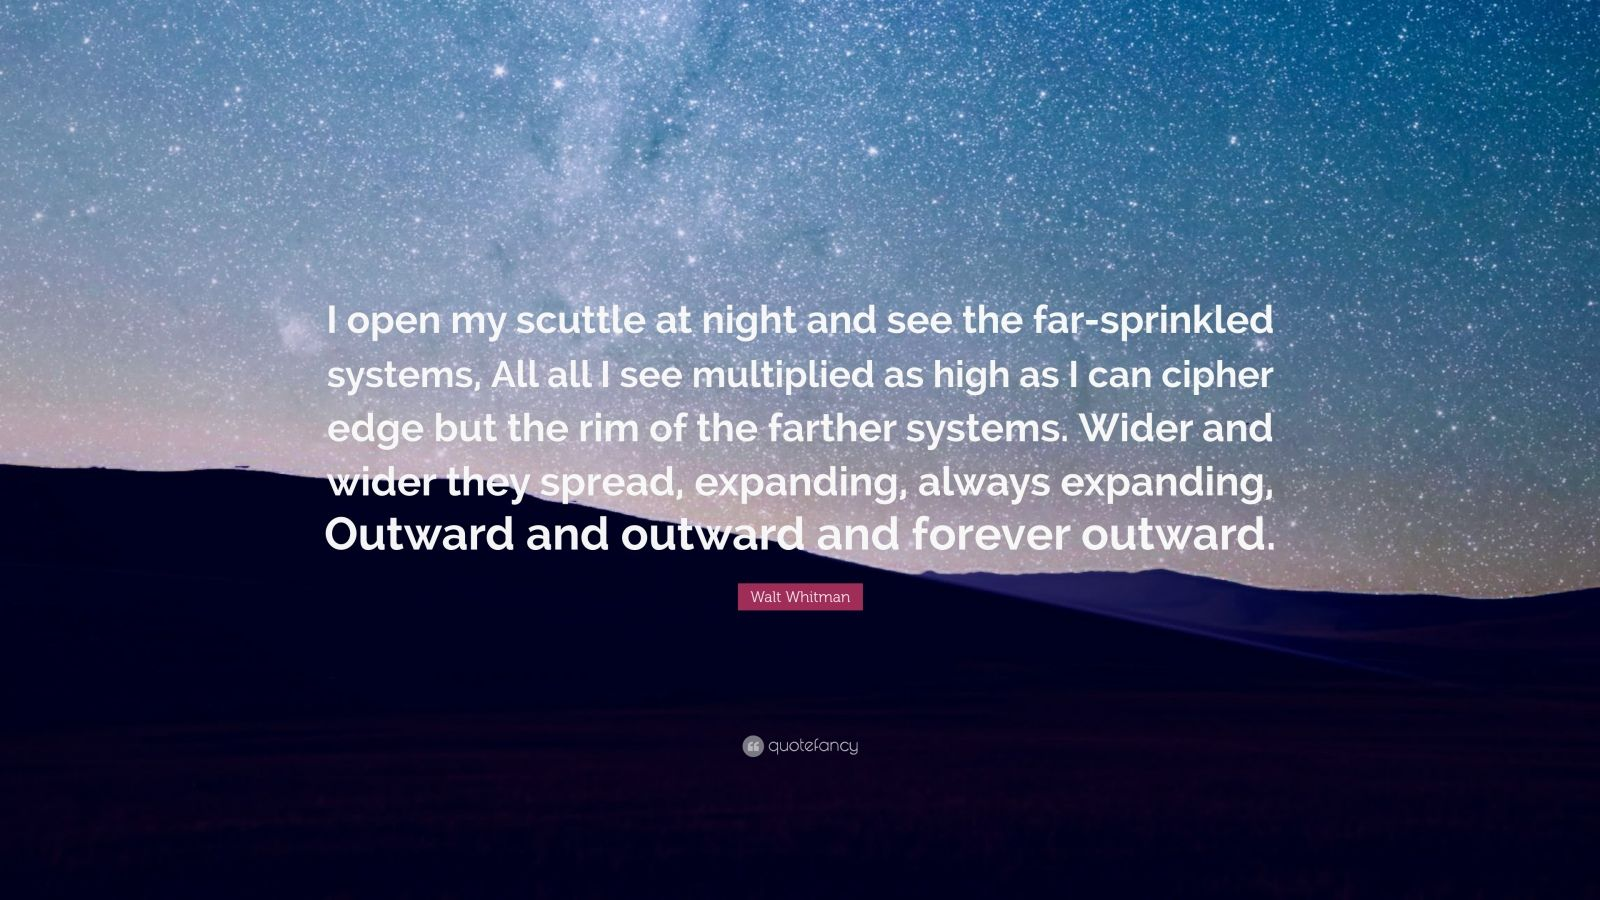 "Walt Whitman Quote: ""I open my scuttle at night and see the far-sprinkled systems, All all I see multiplied as high as I can cipher edge but the rim of the farther systems. Wider and wider they spread, expanding, always expanding, Outward and outward and forever outward."""